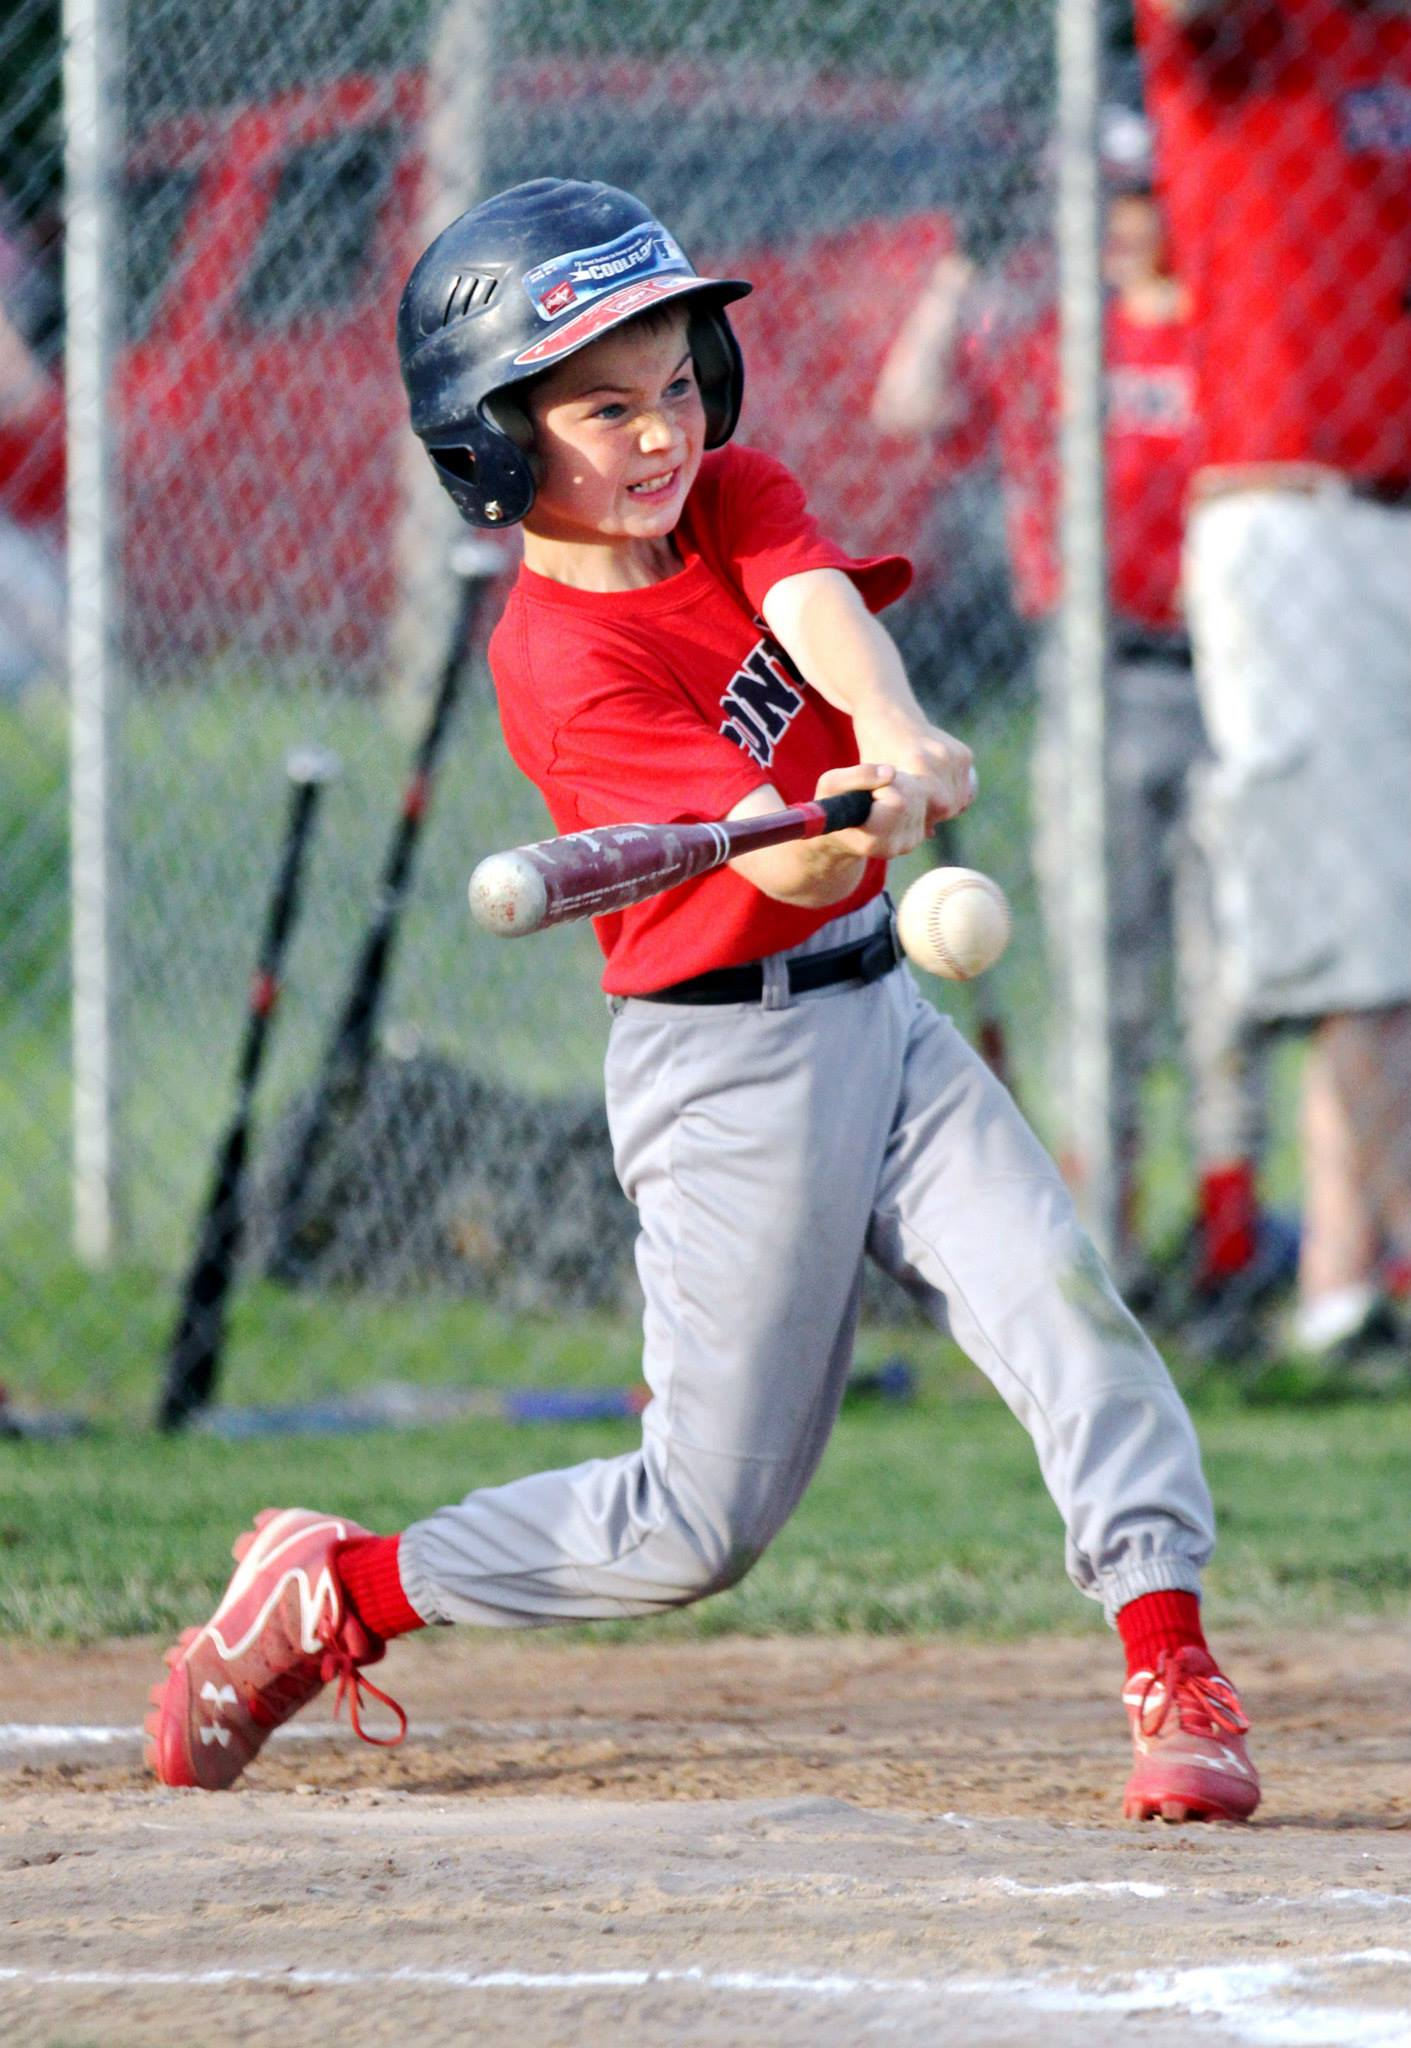 CONWAY, MASS. --Shane Prusak, 8, takes a swing during the youth league Conway Cobra v. Royal LLP game at Herlihy Park on Monday. (Recorder/Micky Bedell)